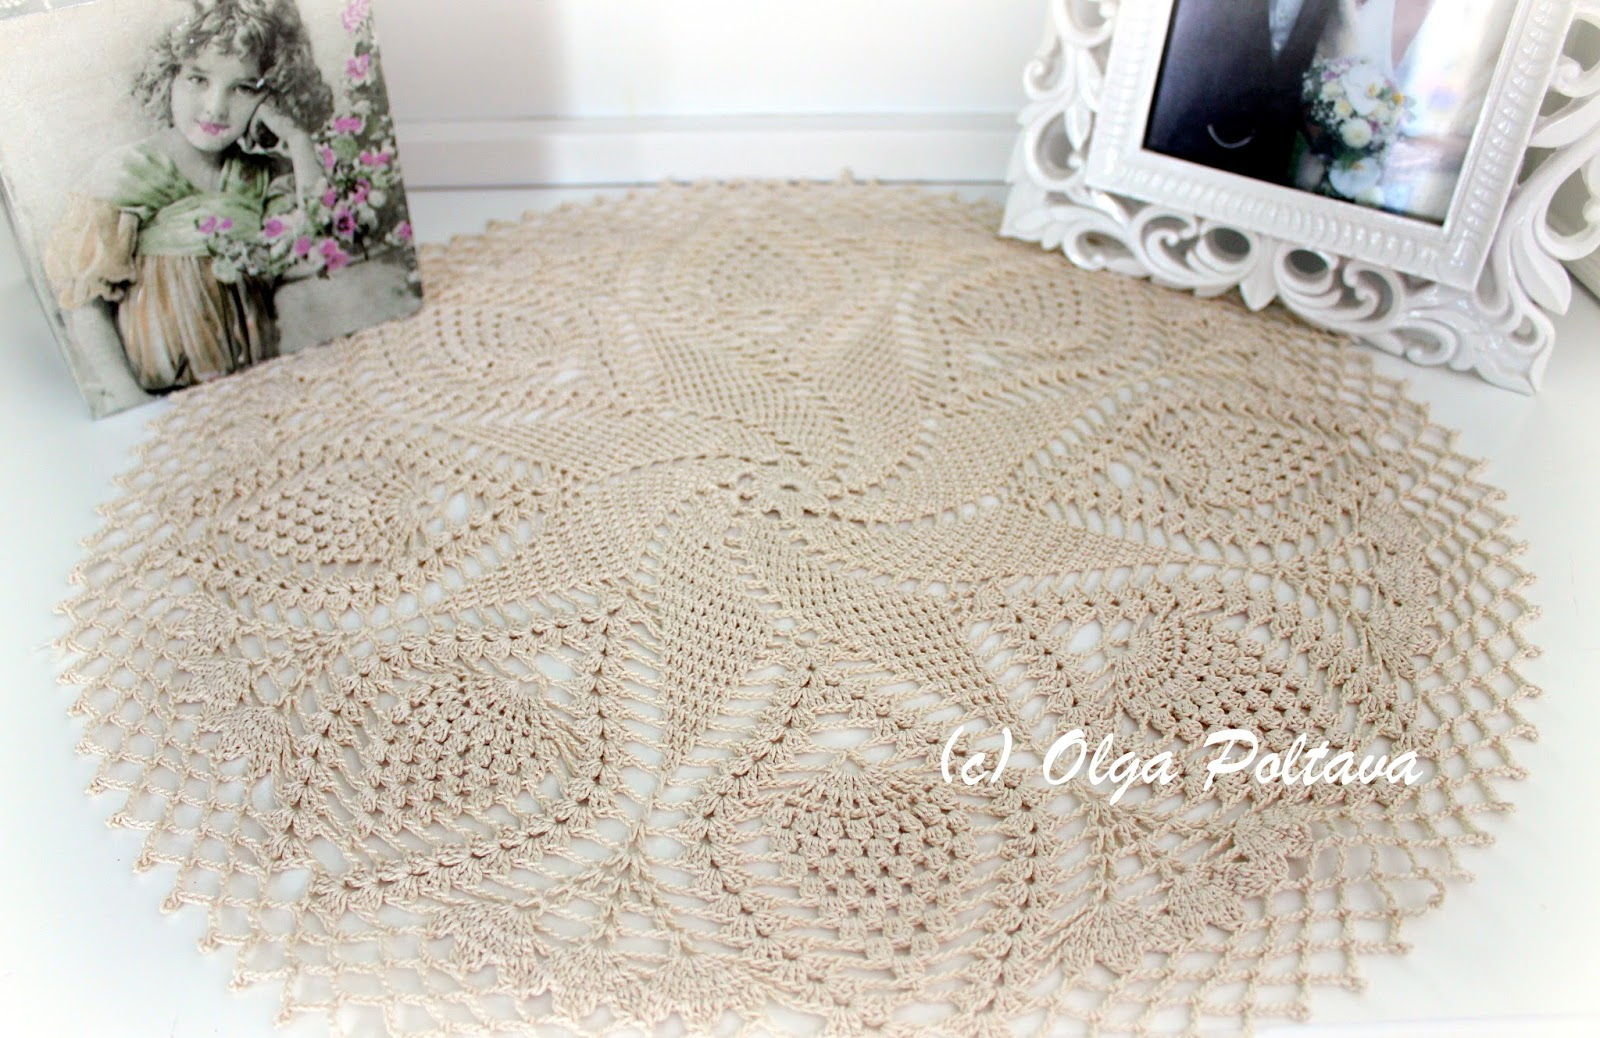 Lacy crochet swirl and pineapples doily free crochet pattern by swirl and pineapples doily free crochet pattern by olga poltava part 2 bankloansurffo Gallery